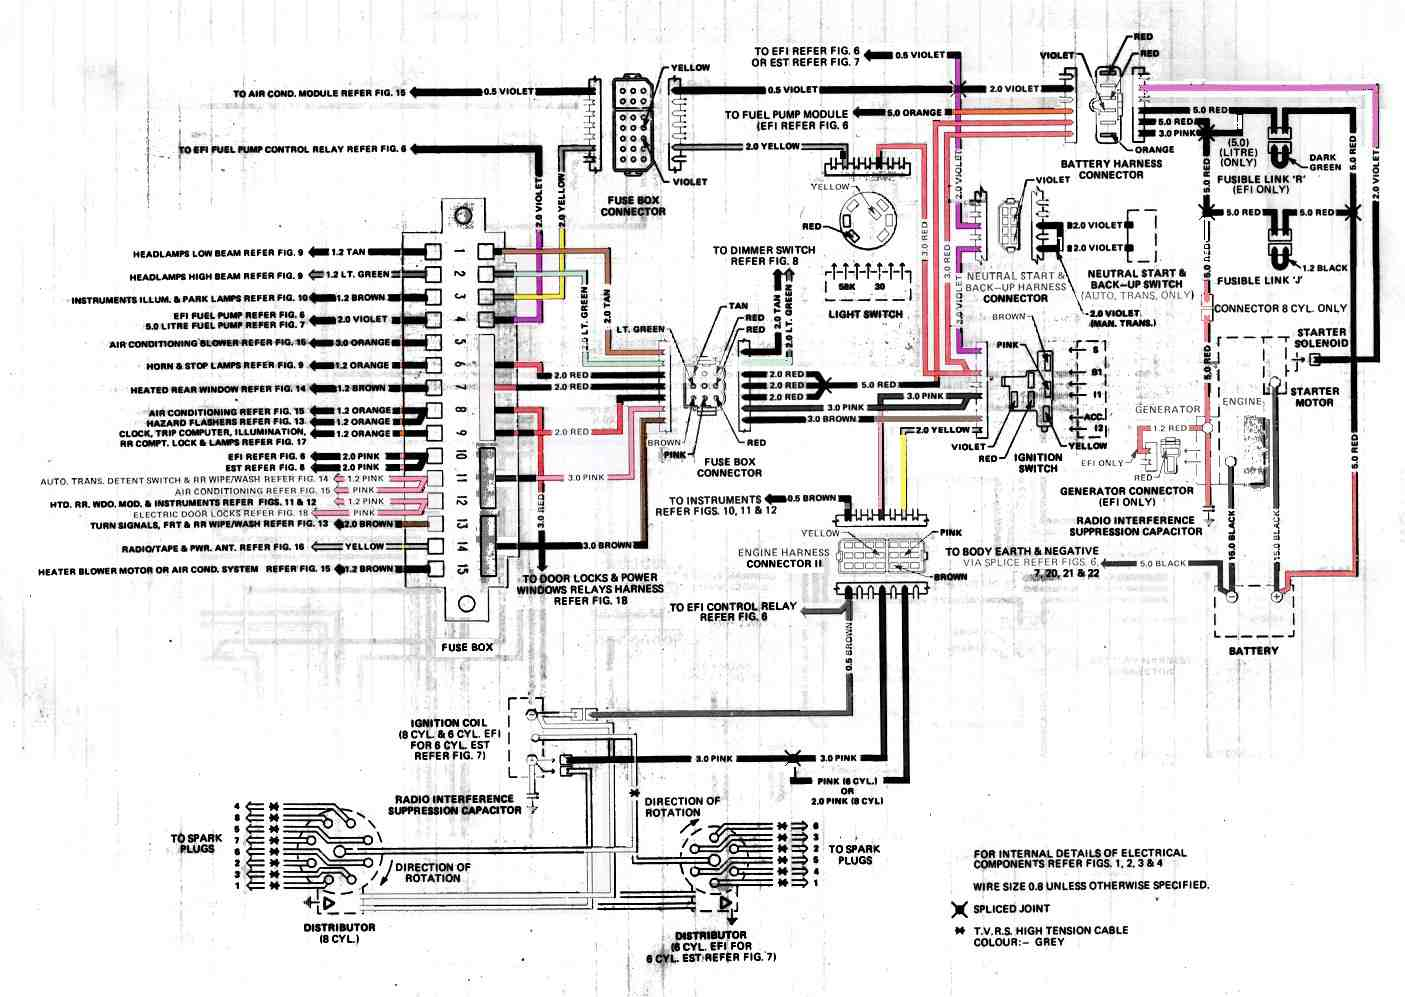 Electrical Panel Board Wiring Diagram Download 3 Phase Panelboard Holden Car Manuals Diagrams Pdf 6 Fault